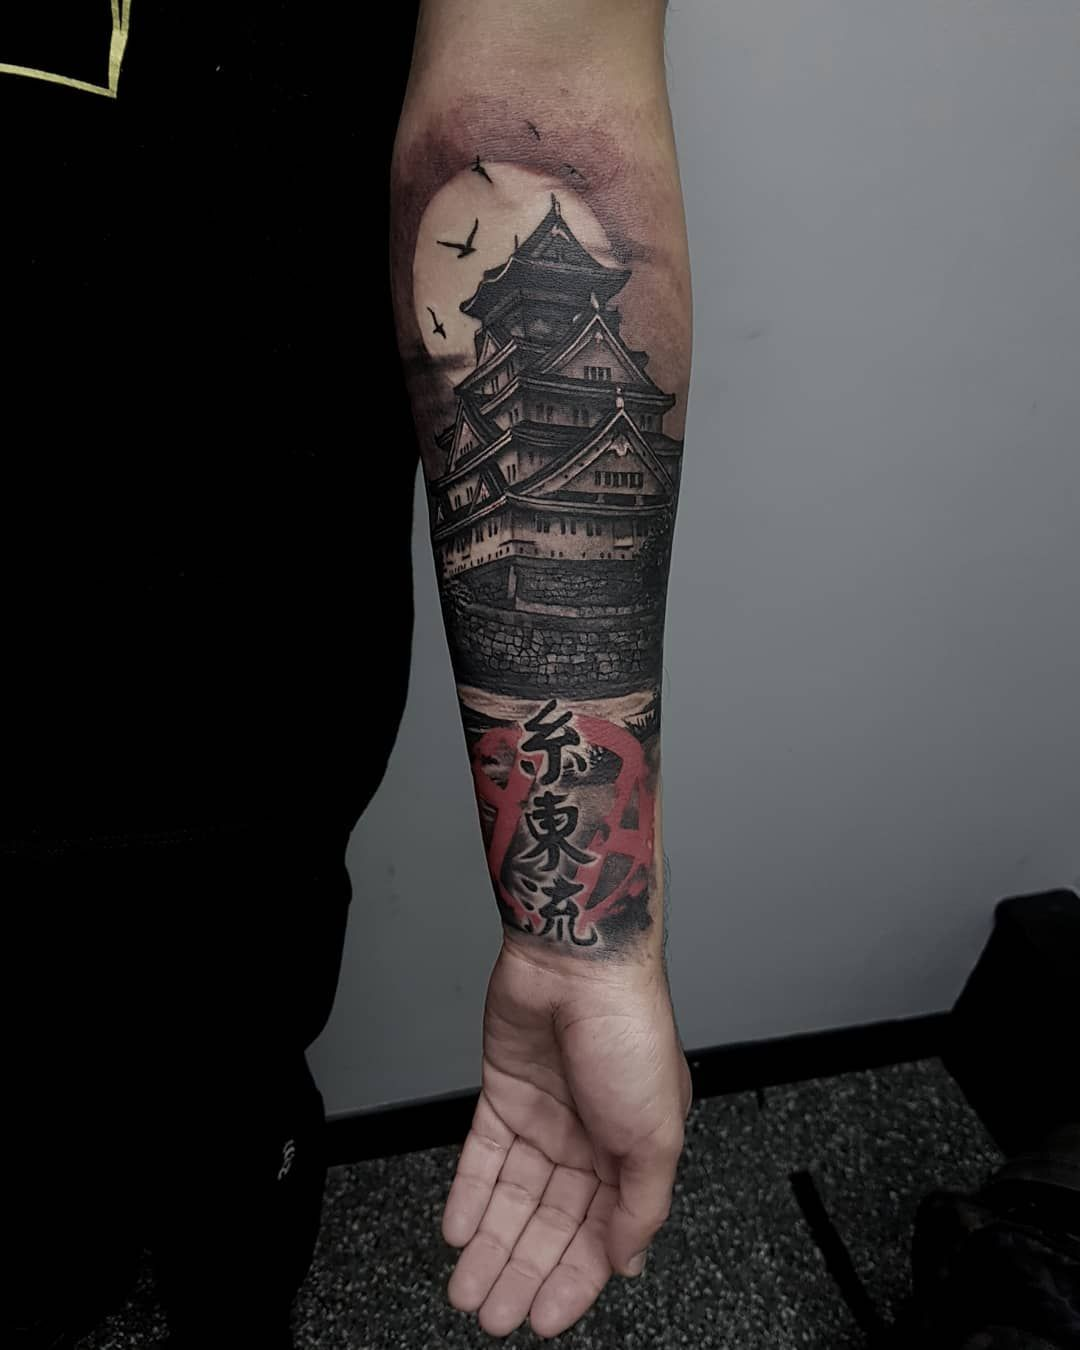 In The 18th Century The Japanese Tattoos Had Another Transformation Tattoos Tatto Half Sleeve Tattoo Tattoos For Women Half Sleeve Half Sleeve Tattoos Designs